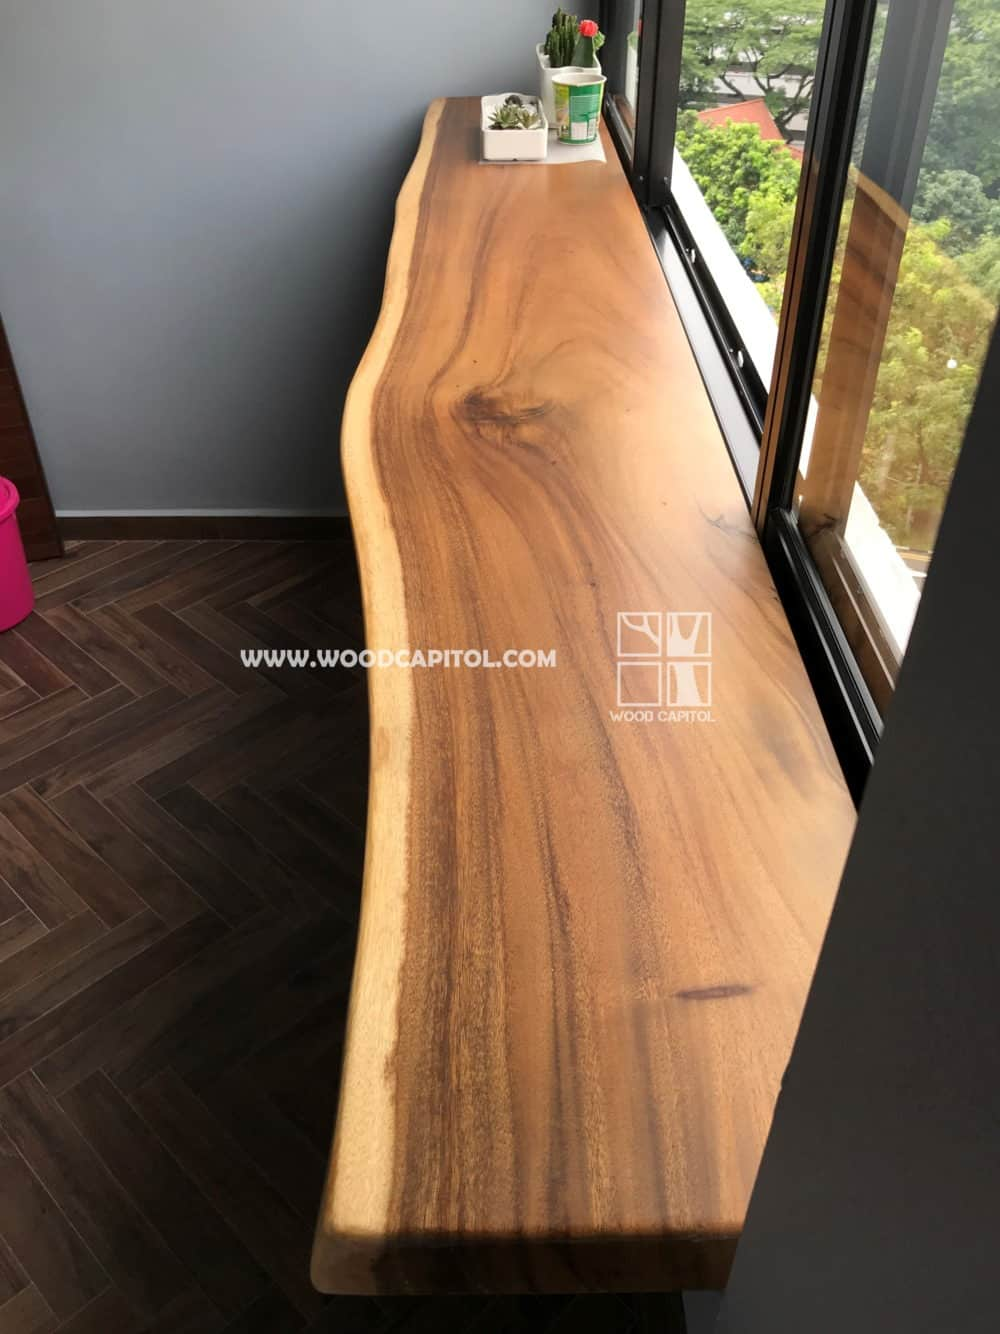 Wood Capitol Suar Wood Window Ledge 2